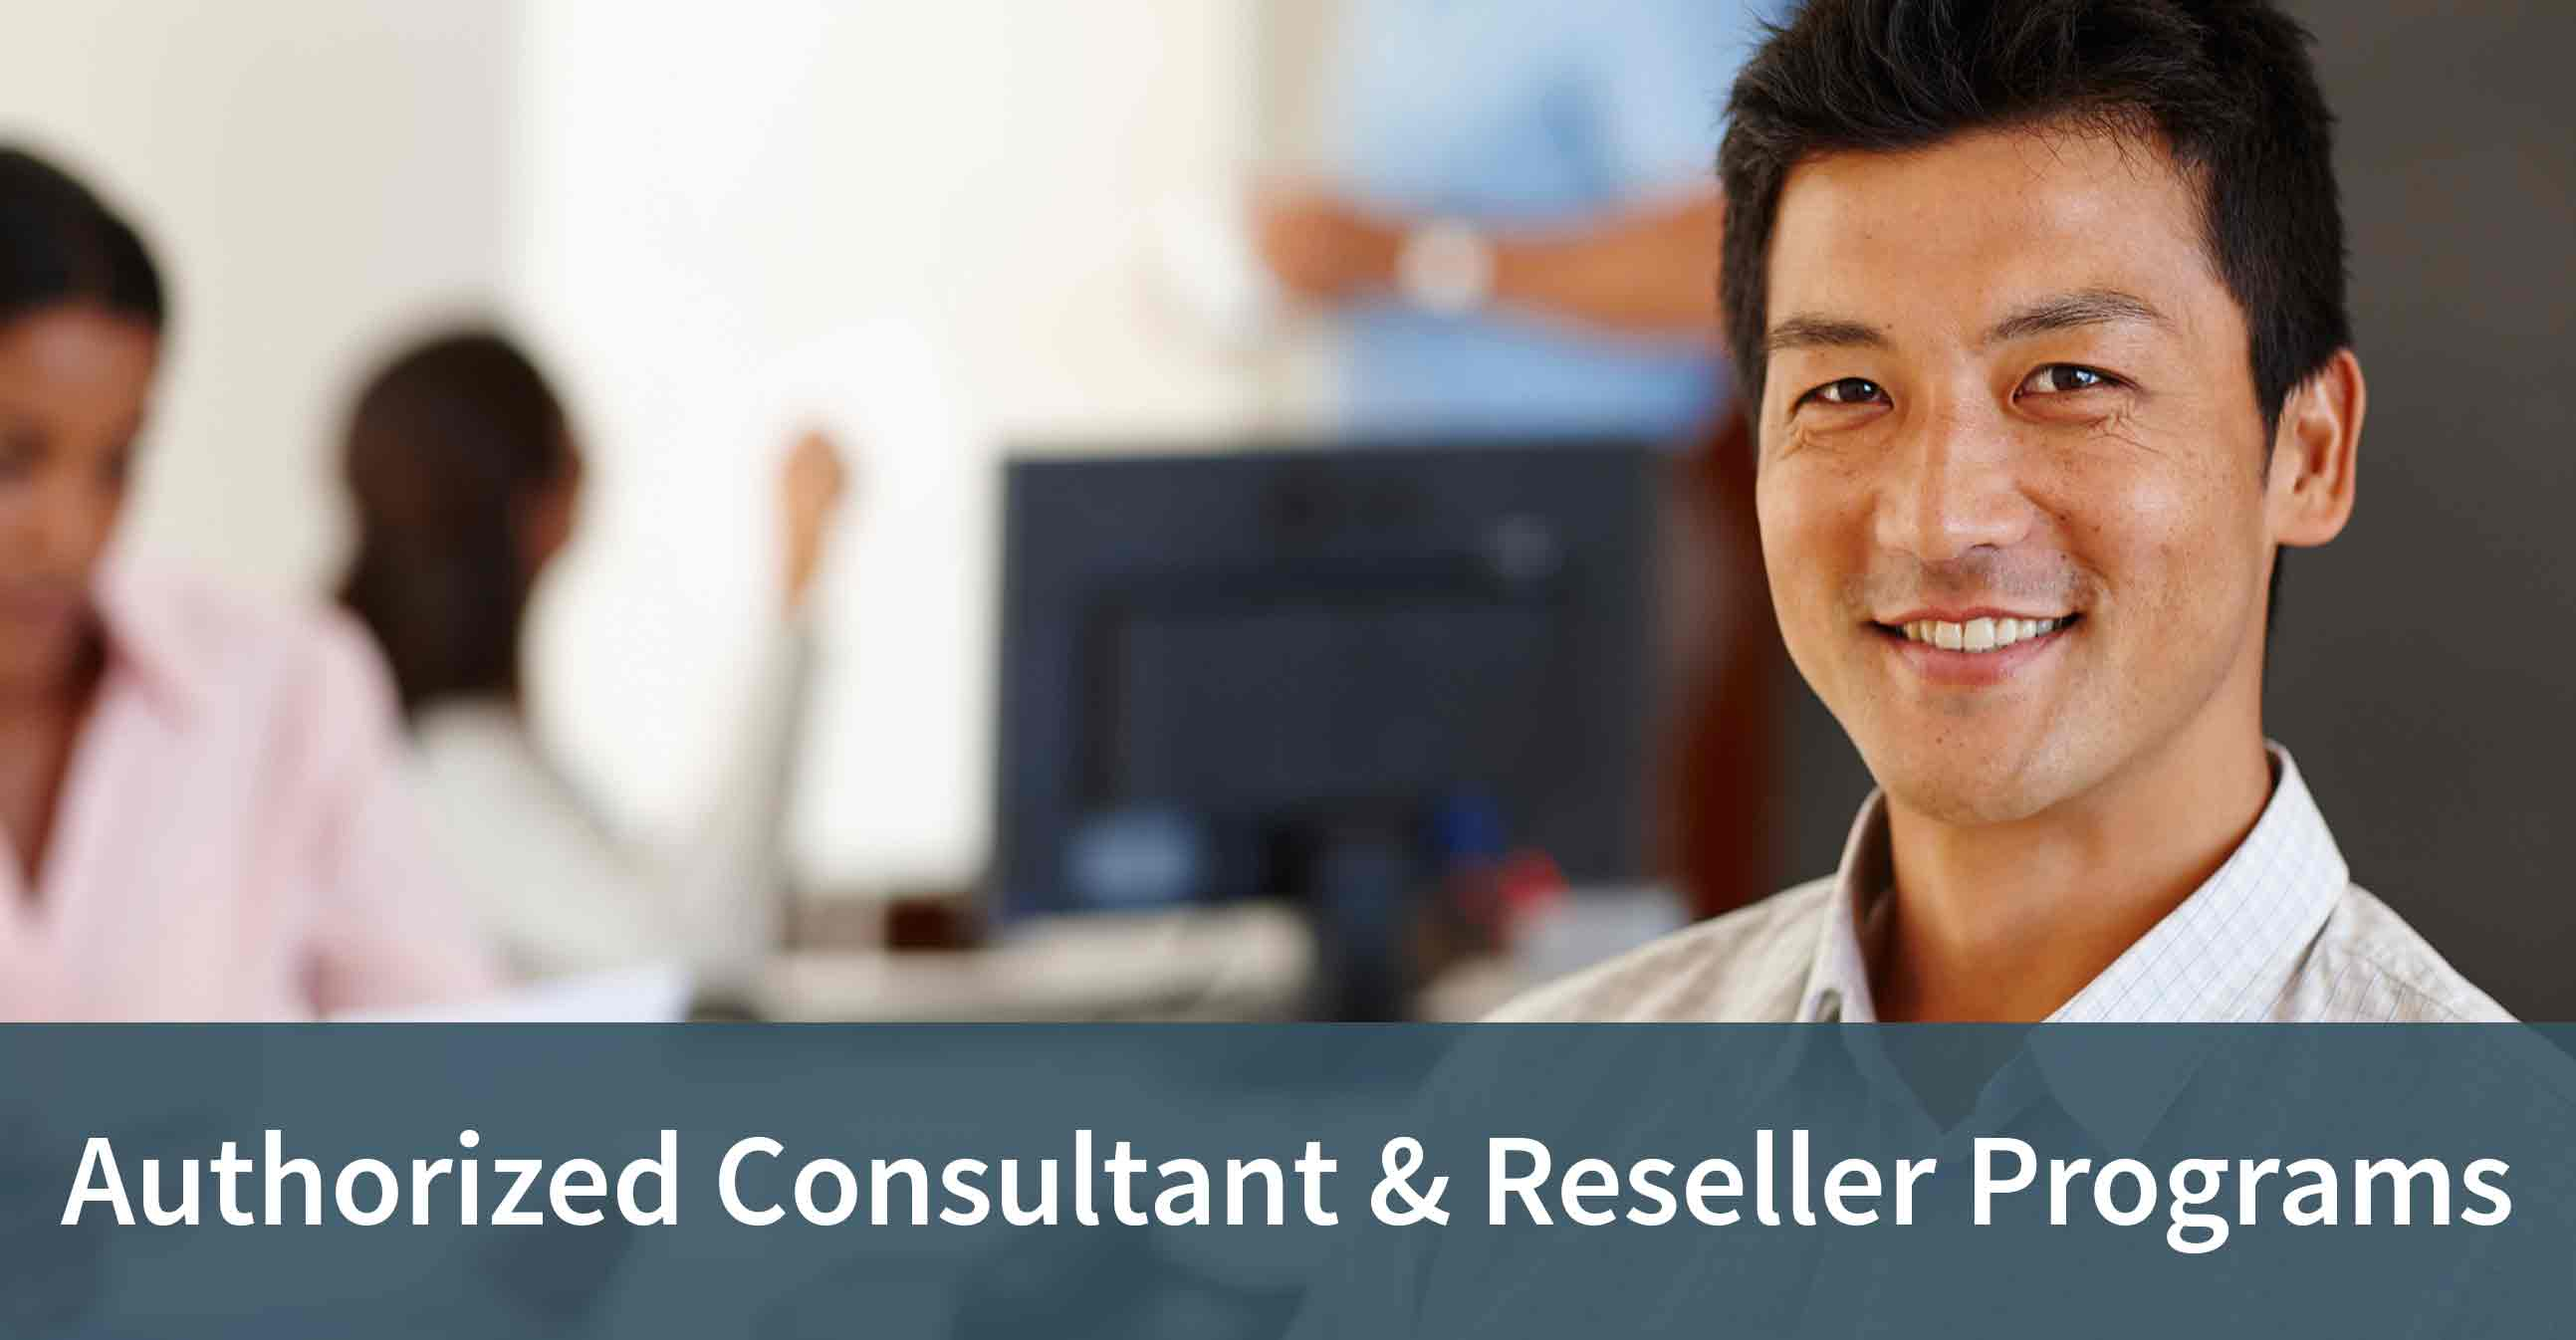 Authorized Consultant & Reseller Programs